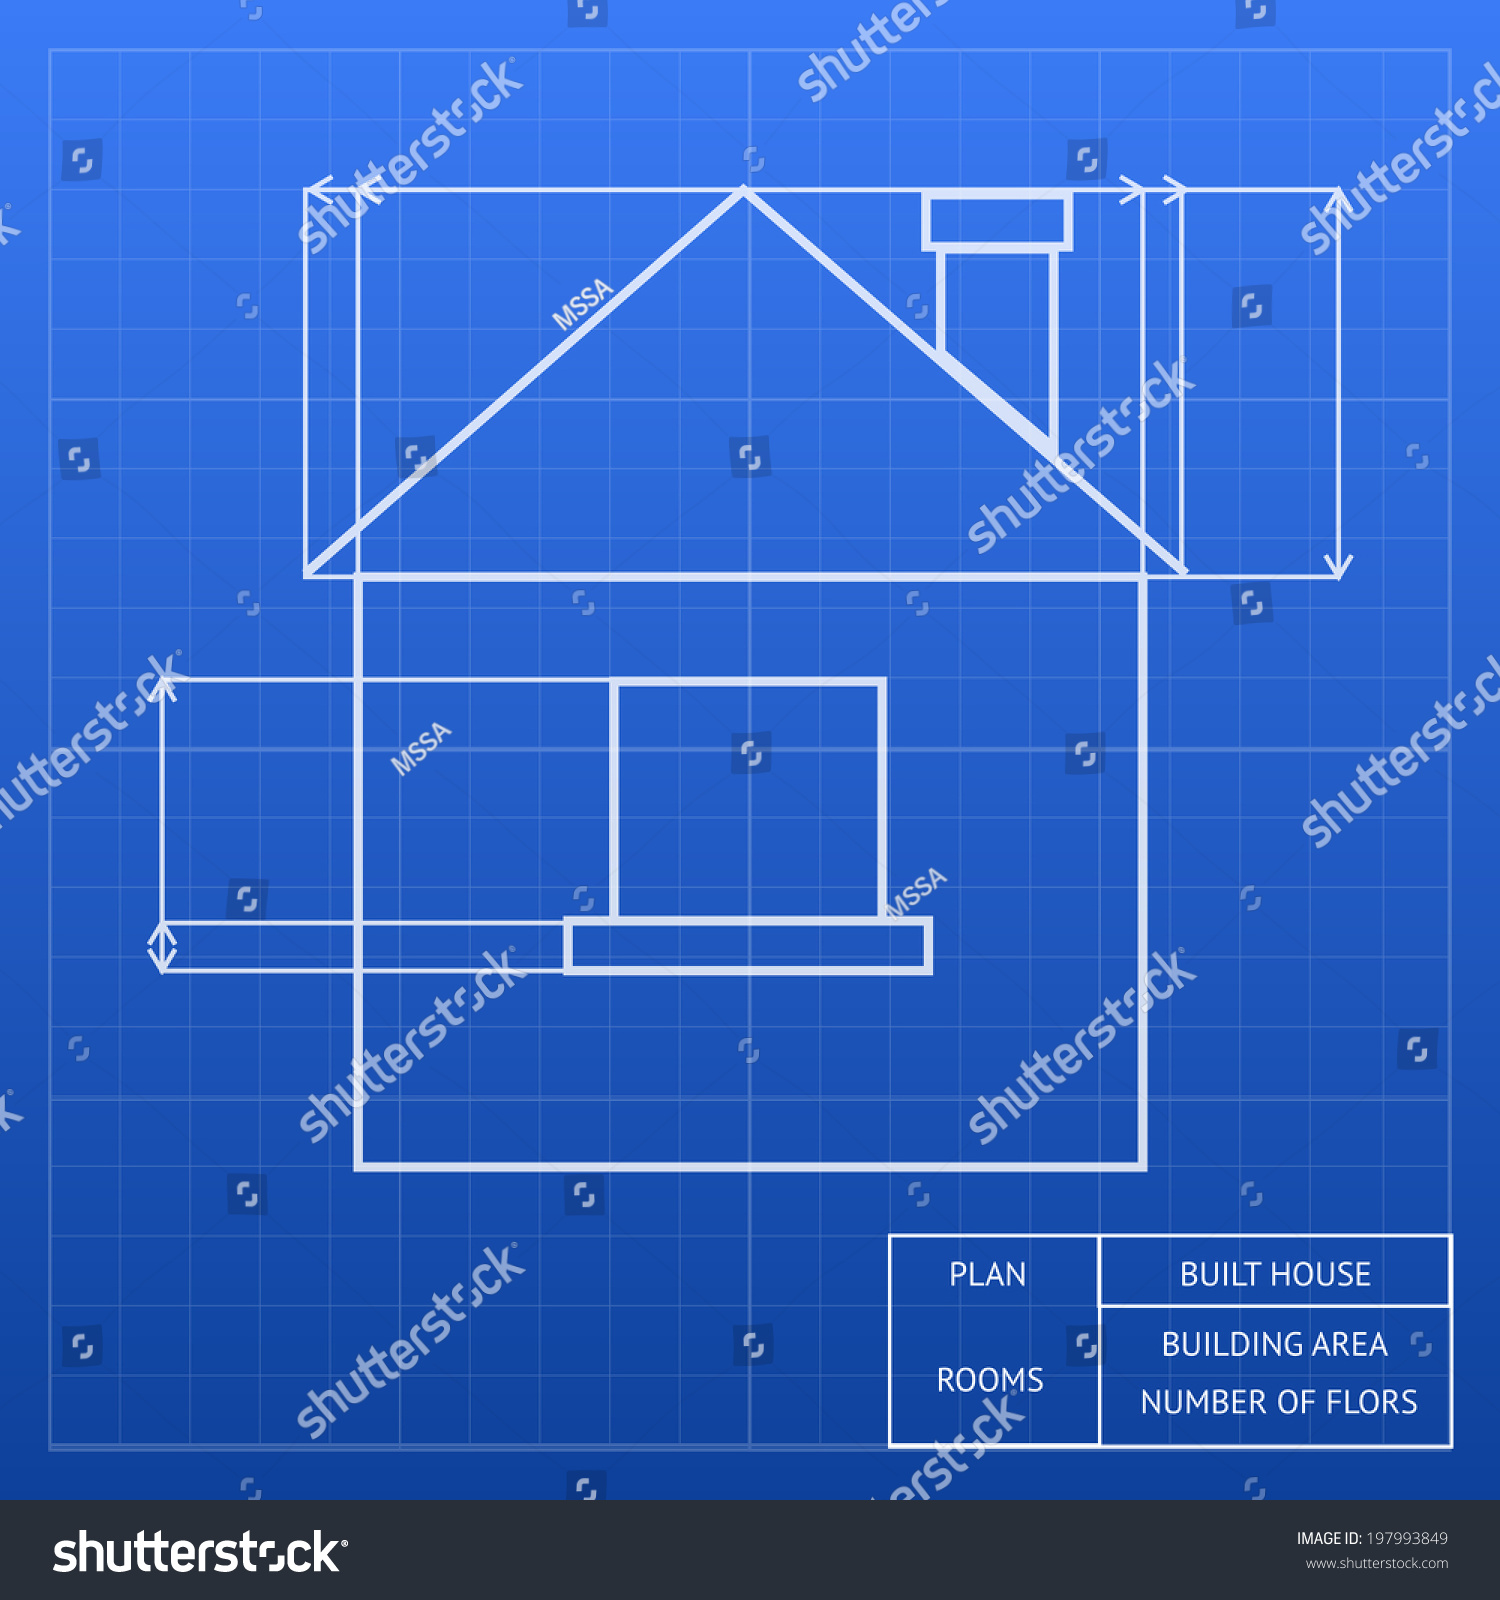 Architectural blueprint house design showing exterior stock architectural blueprint of a house design showing an exterior elevation with window and roof heights and malvernweather Image collections